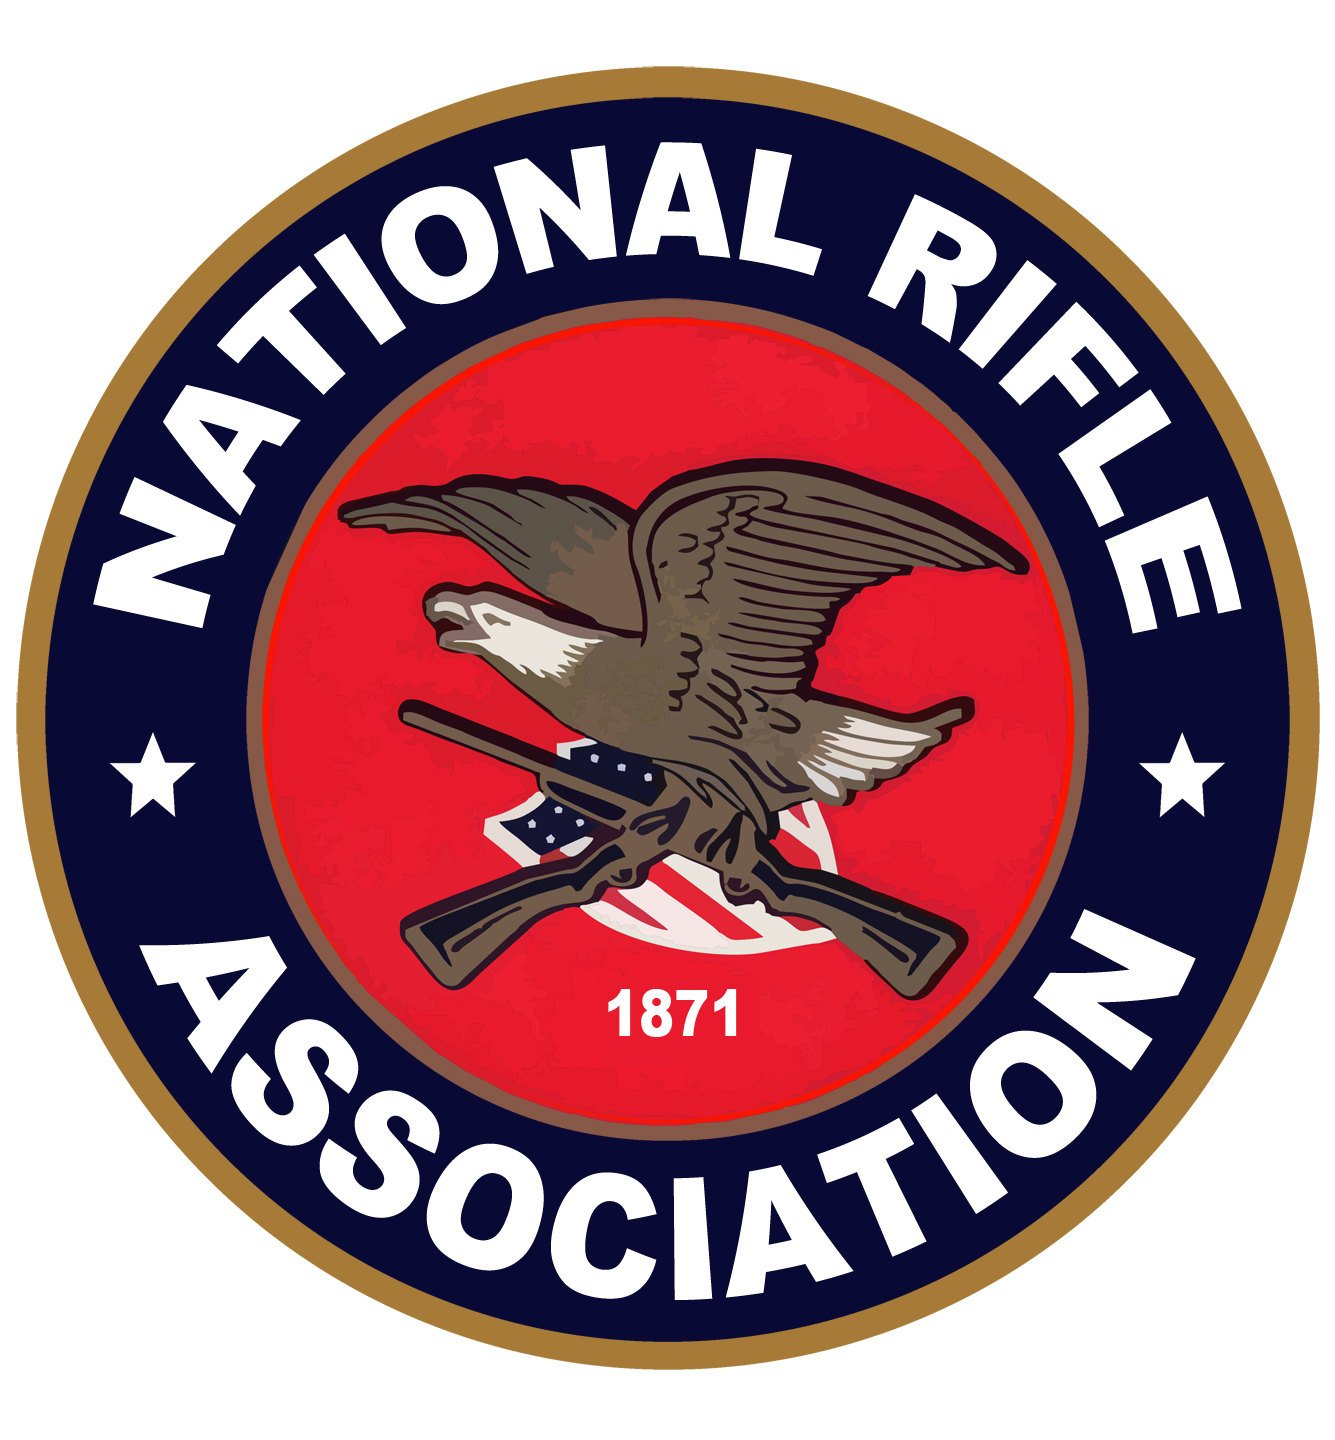 The National Rifle Association (NRA) Essays